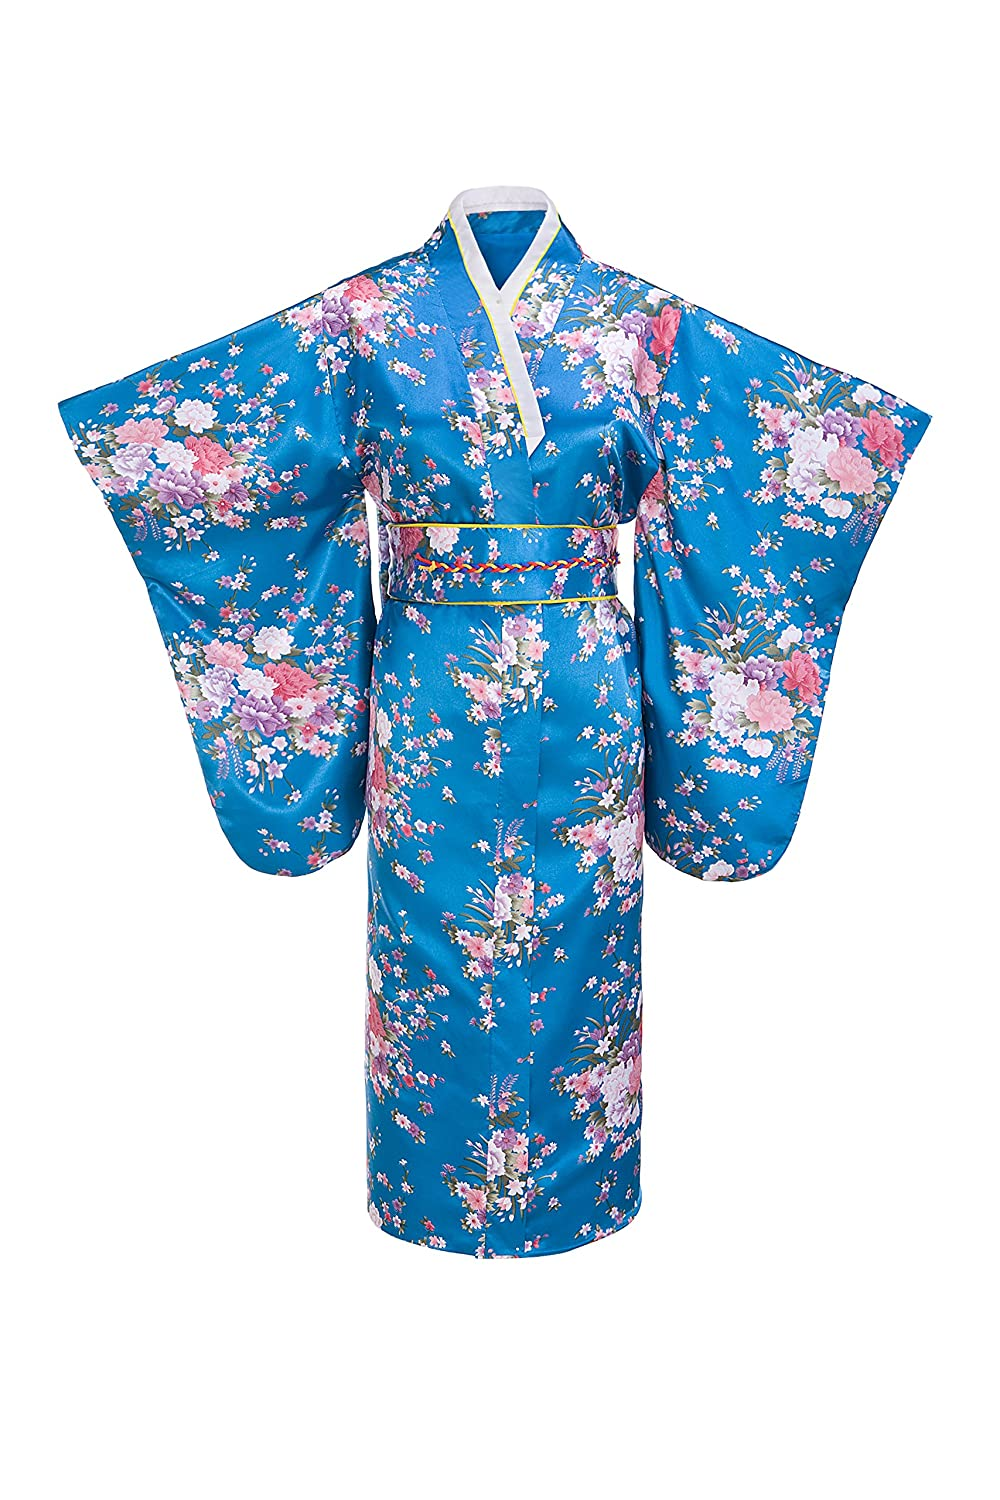 Traditional and Cultural East Asian Wear   Amazon.com